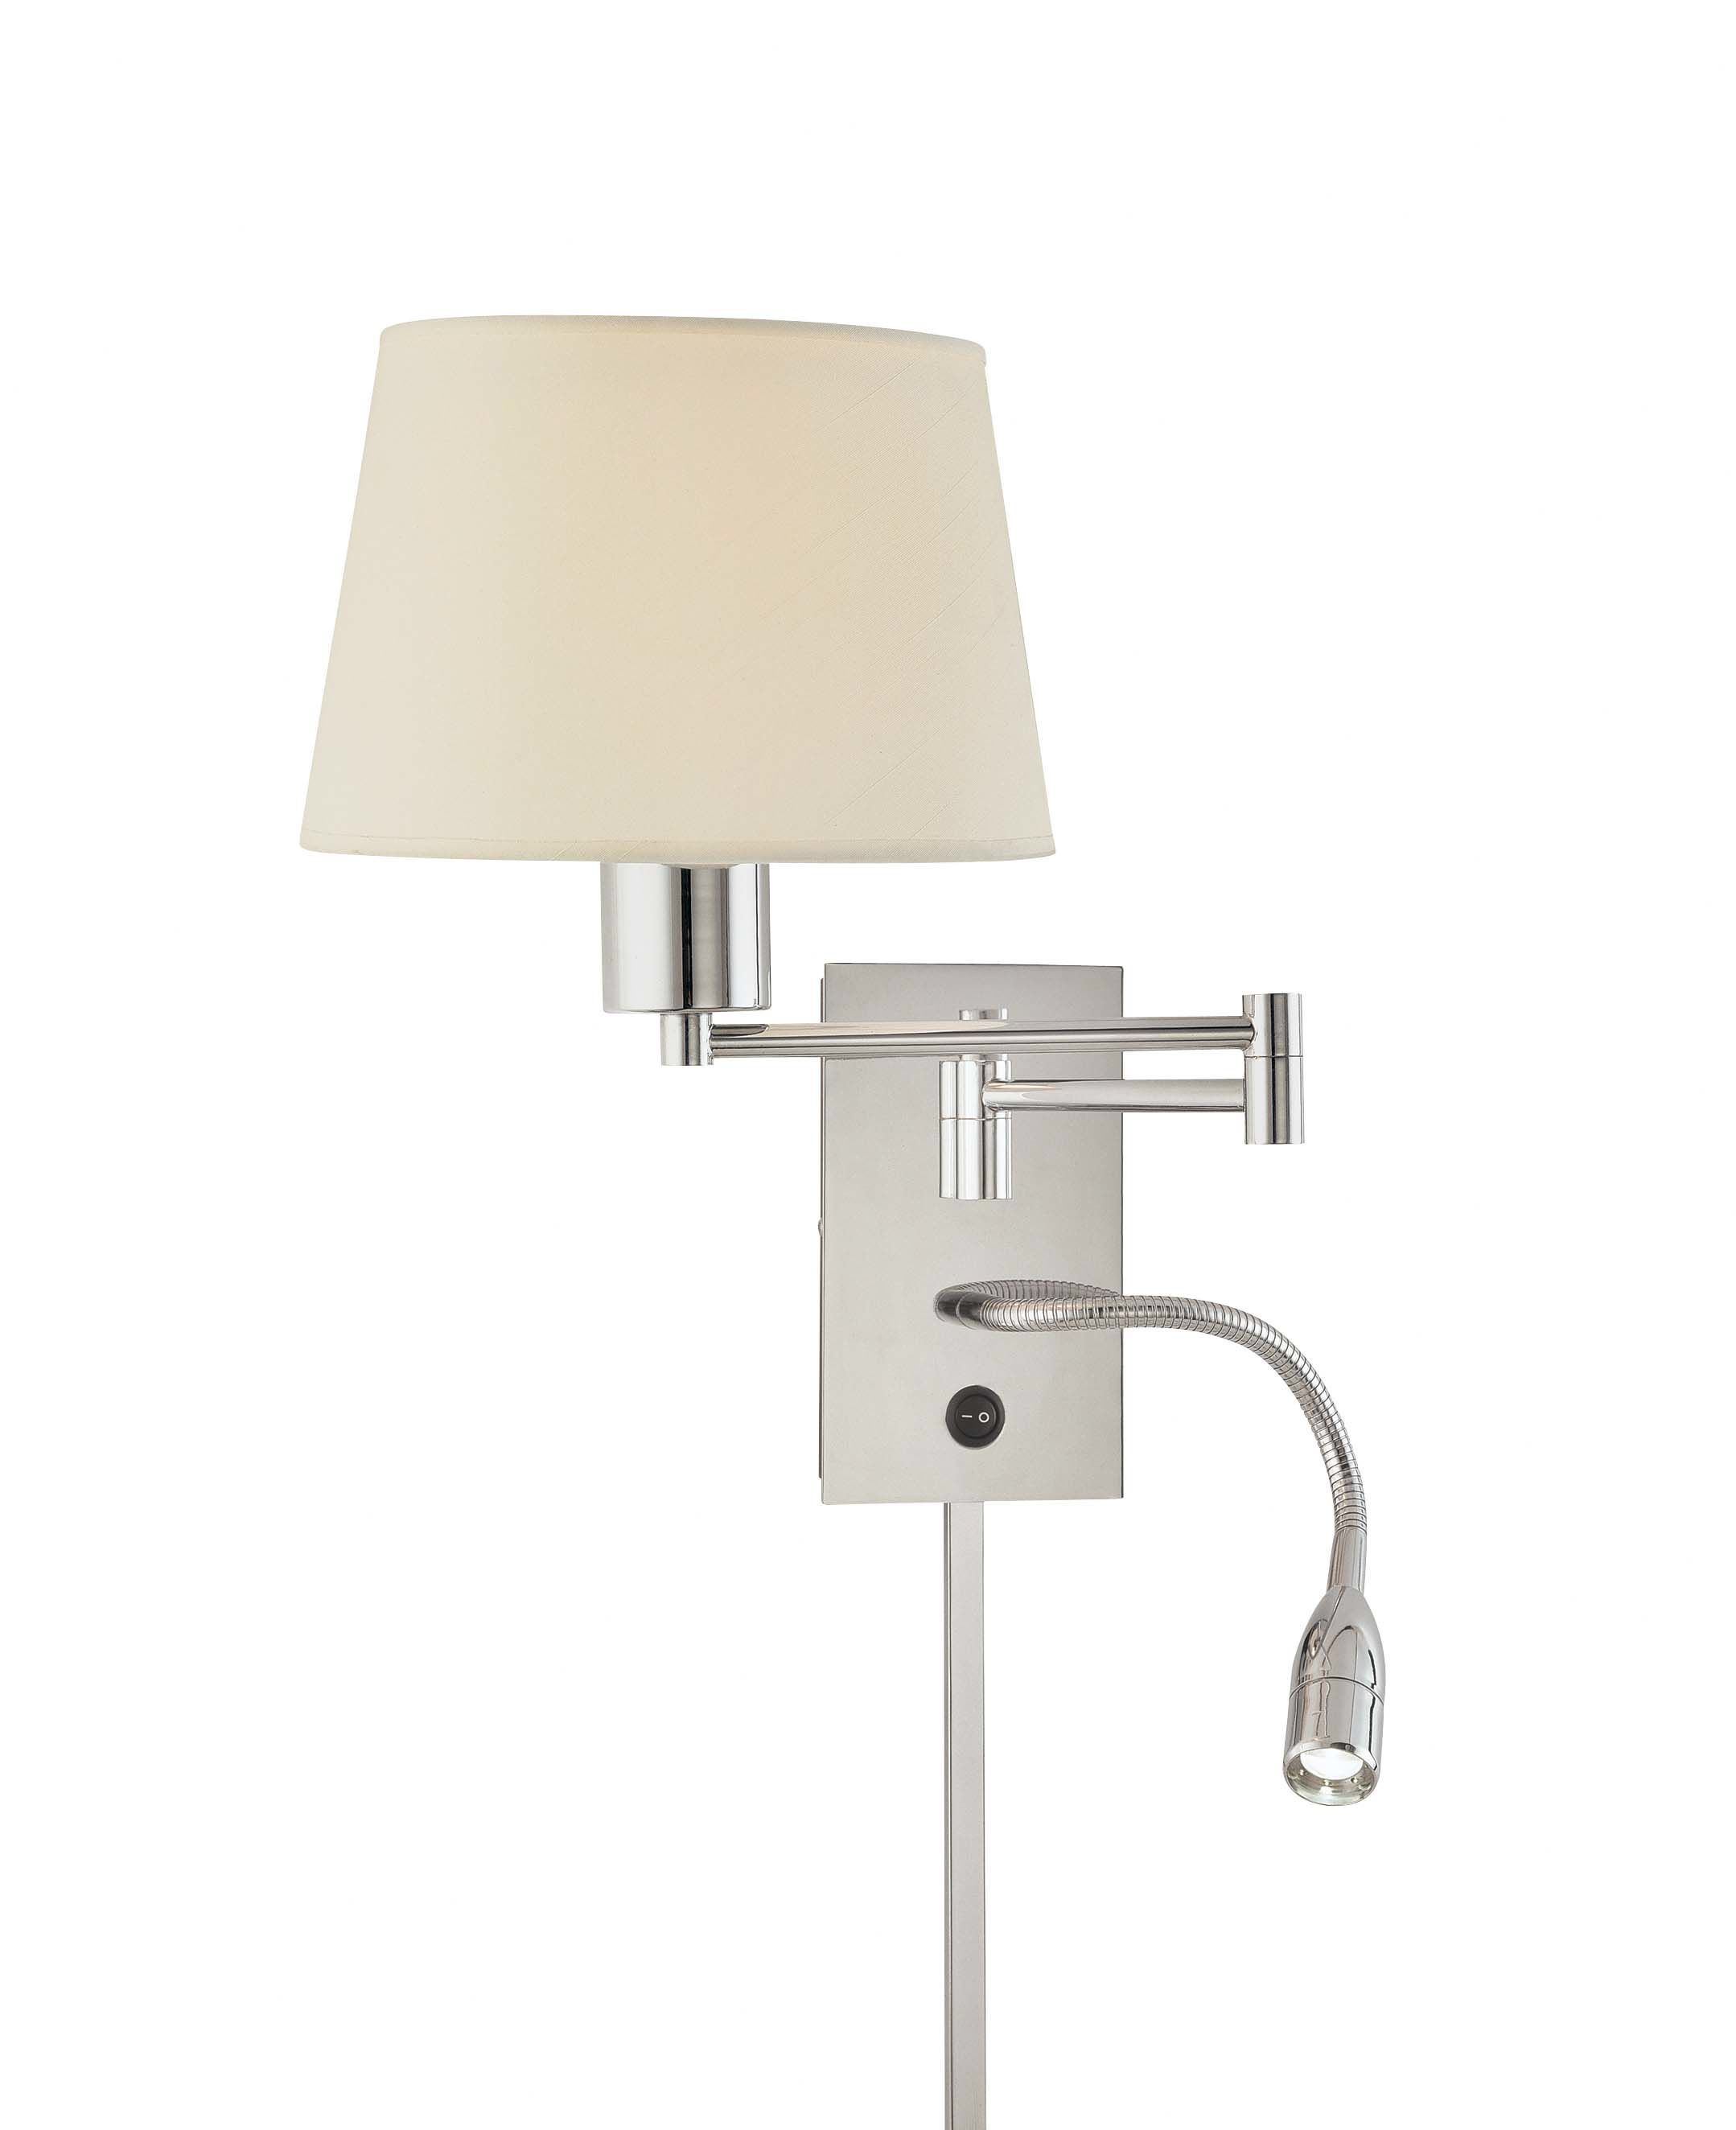 georges reading room swing arm wall sconce - Bedroom Wall Sconces For Reading